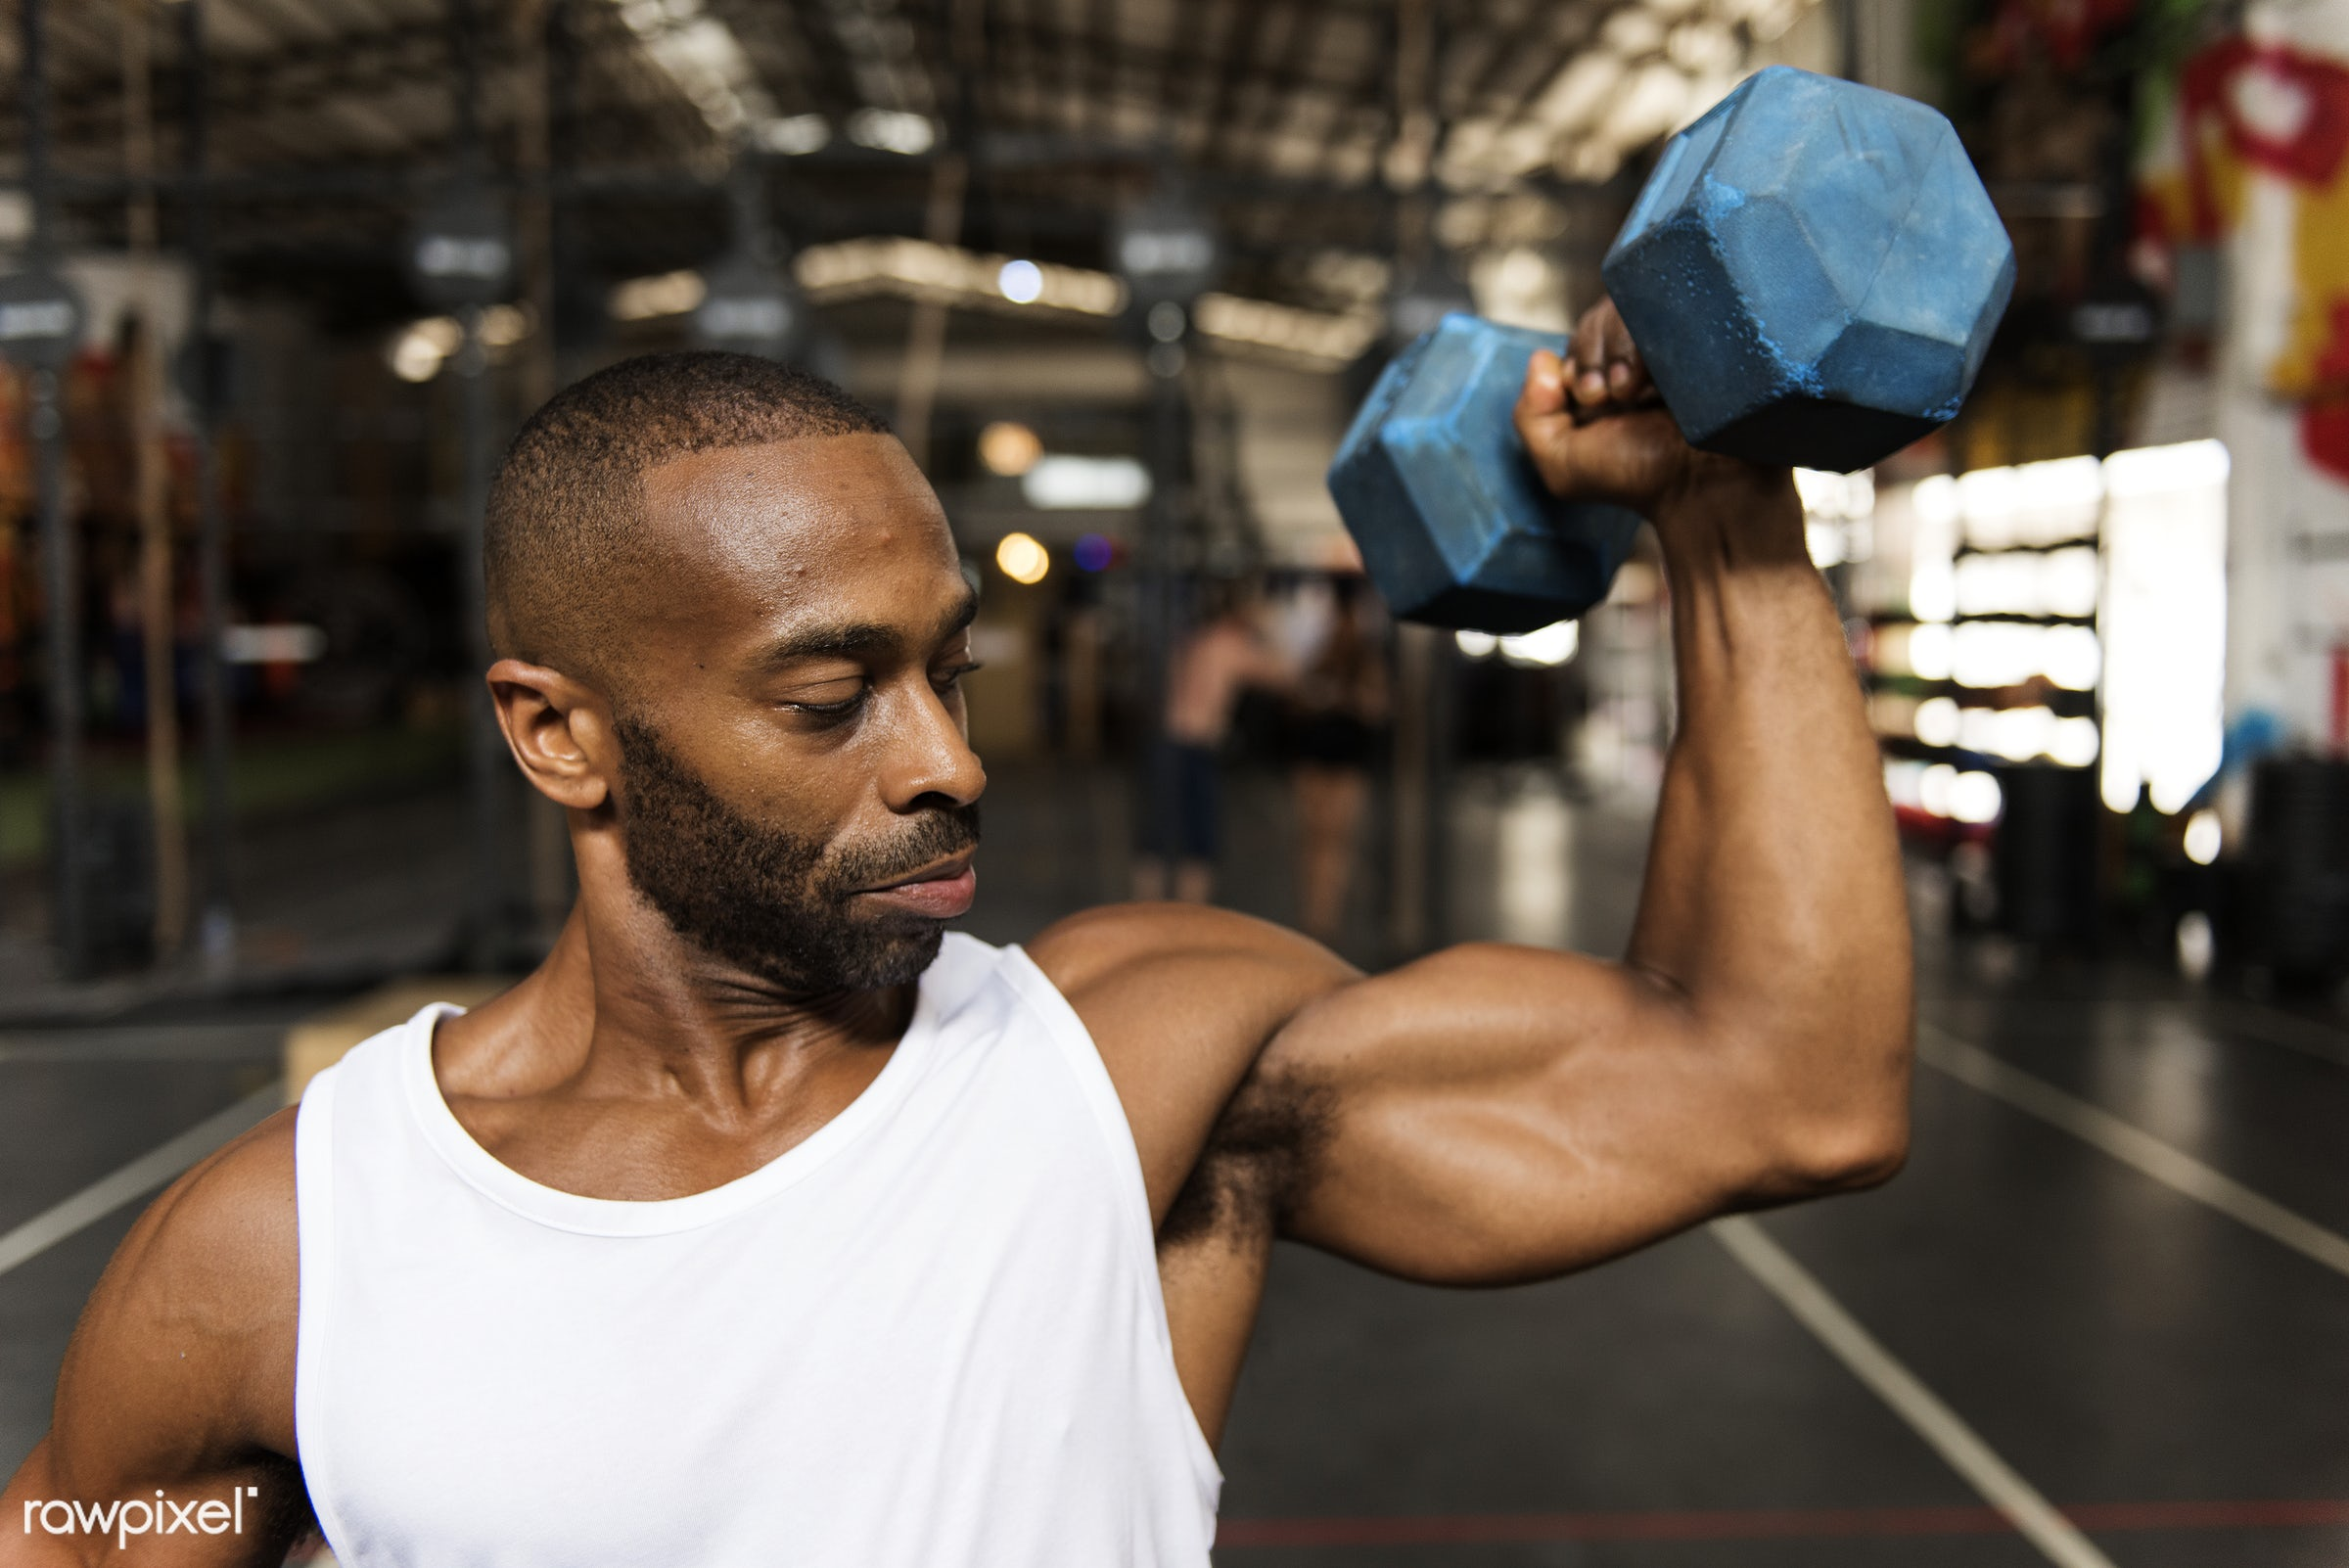 Muscle man at the gym - achievement, active, activity, african descent, athlete, athletic, attractive, body, buff, dumbbells...